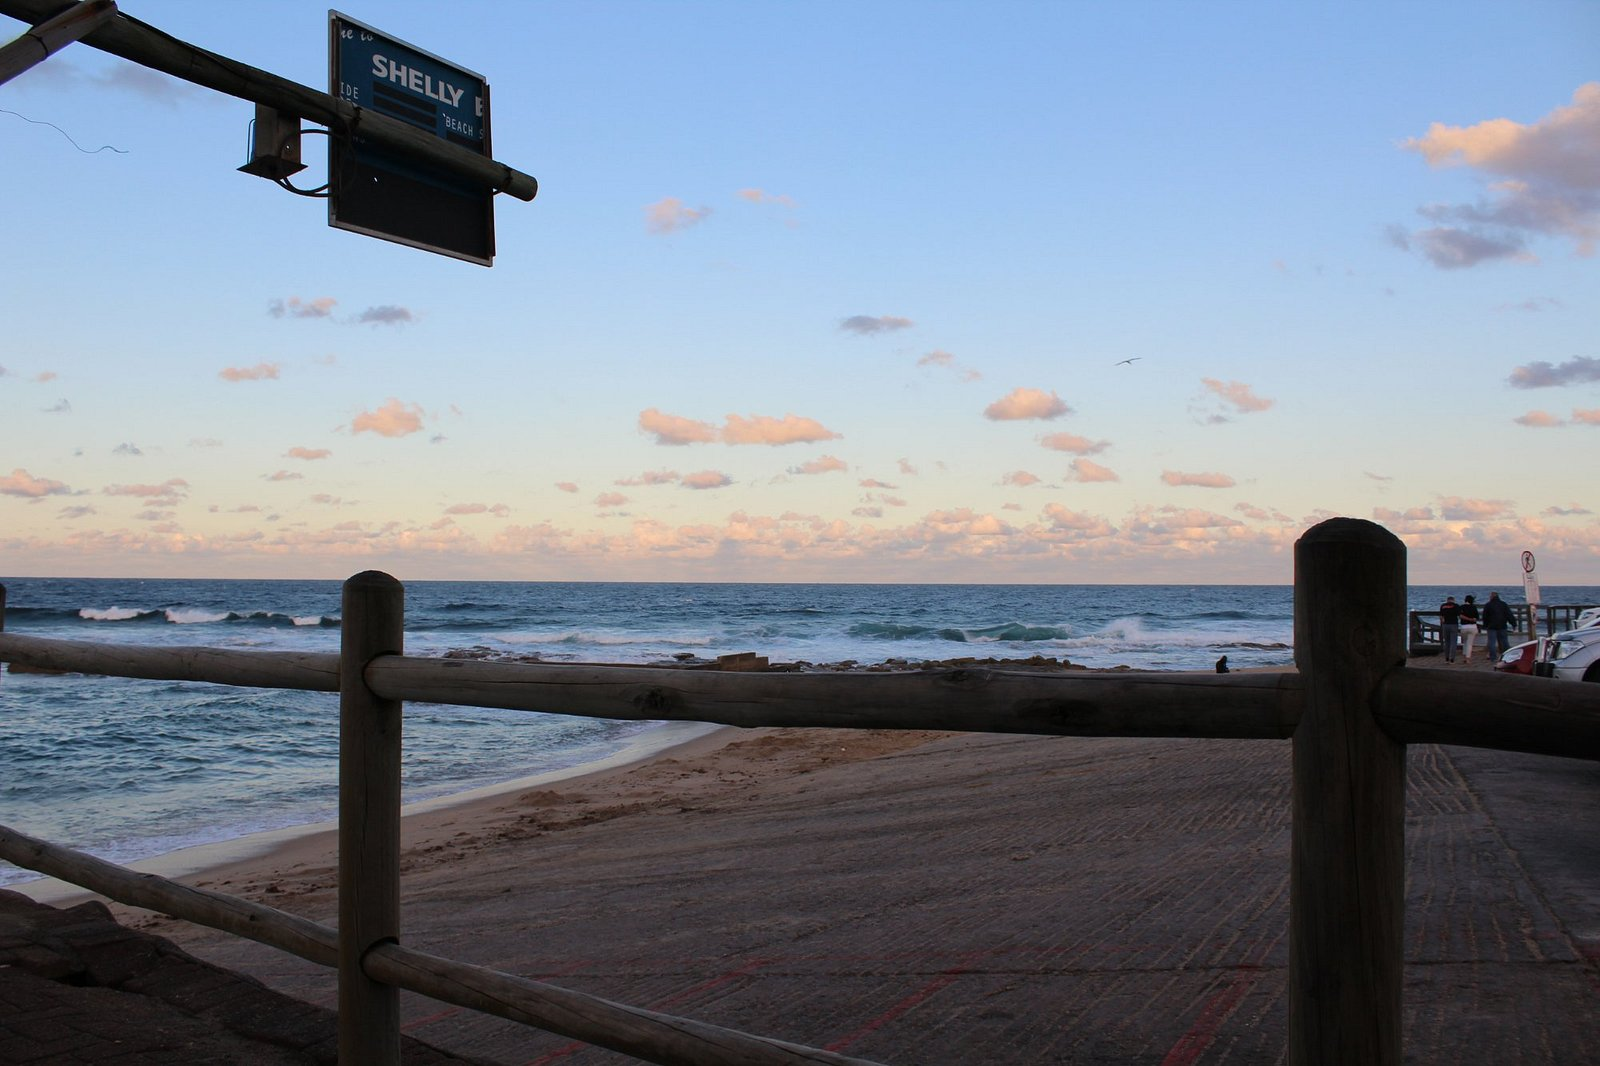 Ski-boat launch site at Shelly Beach